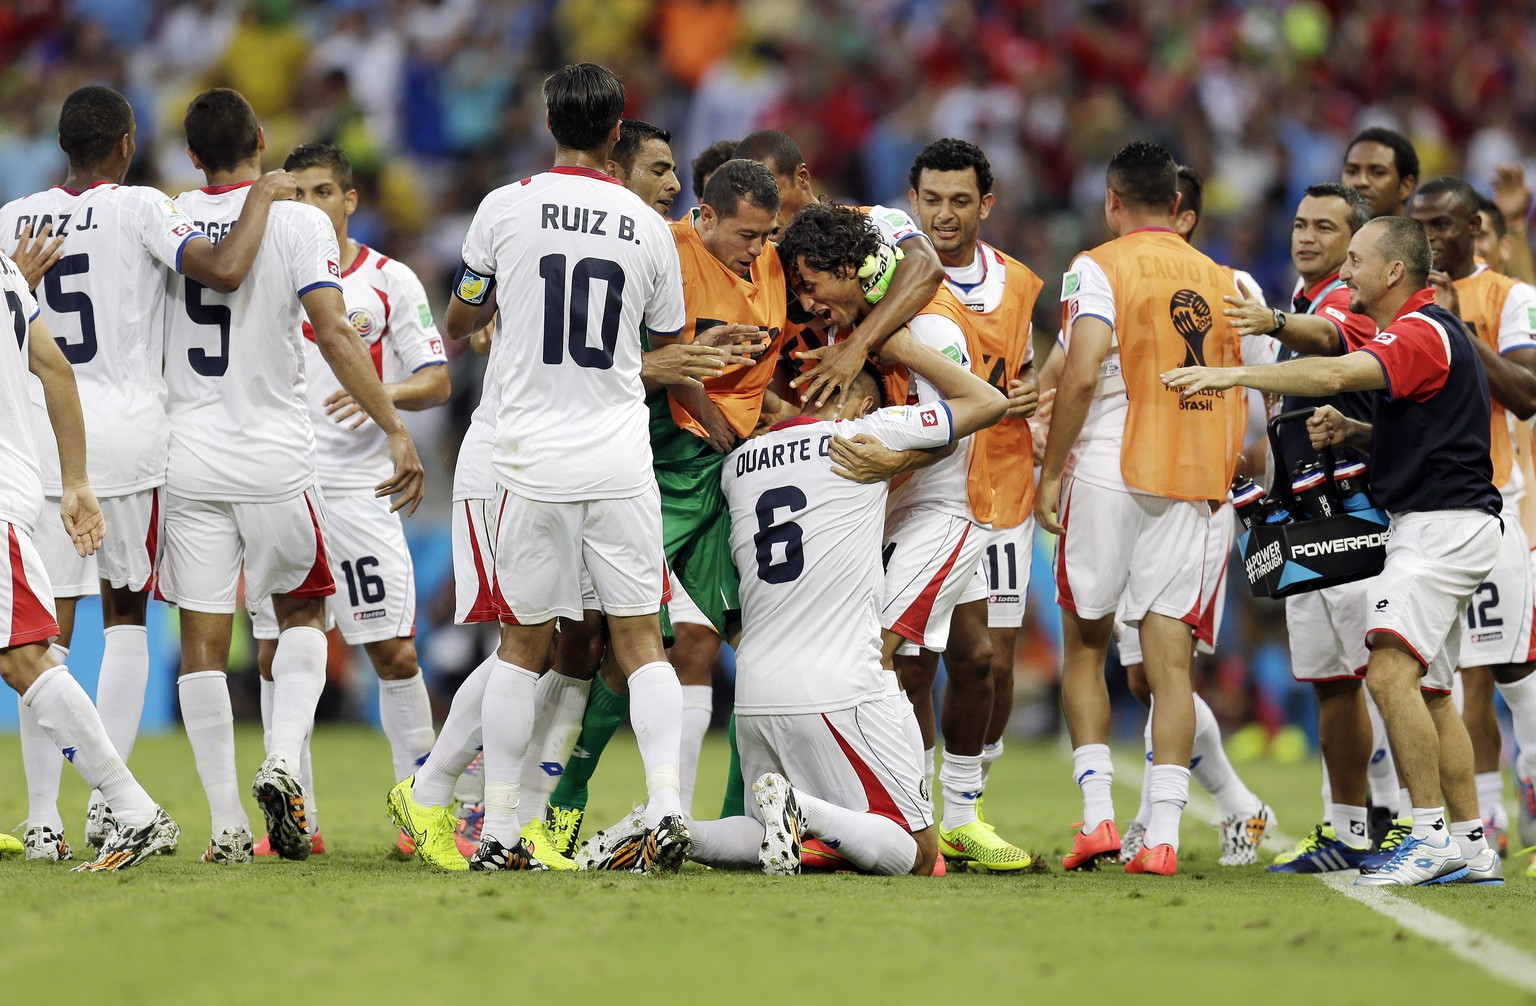 Costa Rican players swarm over Costa Rica's Oscar Duarte (6) after he scored his side's second goal during the group D World Cup soccer match between Uruguay and Costa Rica at the Arena Castelao in Fortaleza, Brazil, Saturday, June 14, 2014.  (AP Photo/Natacha Pisarenko)